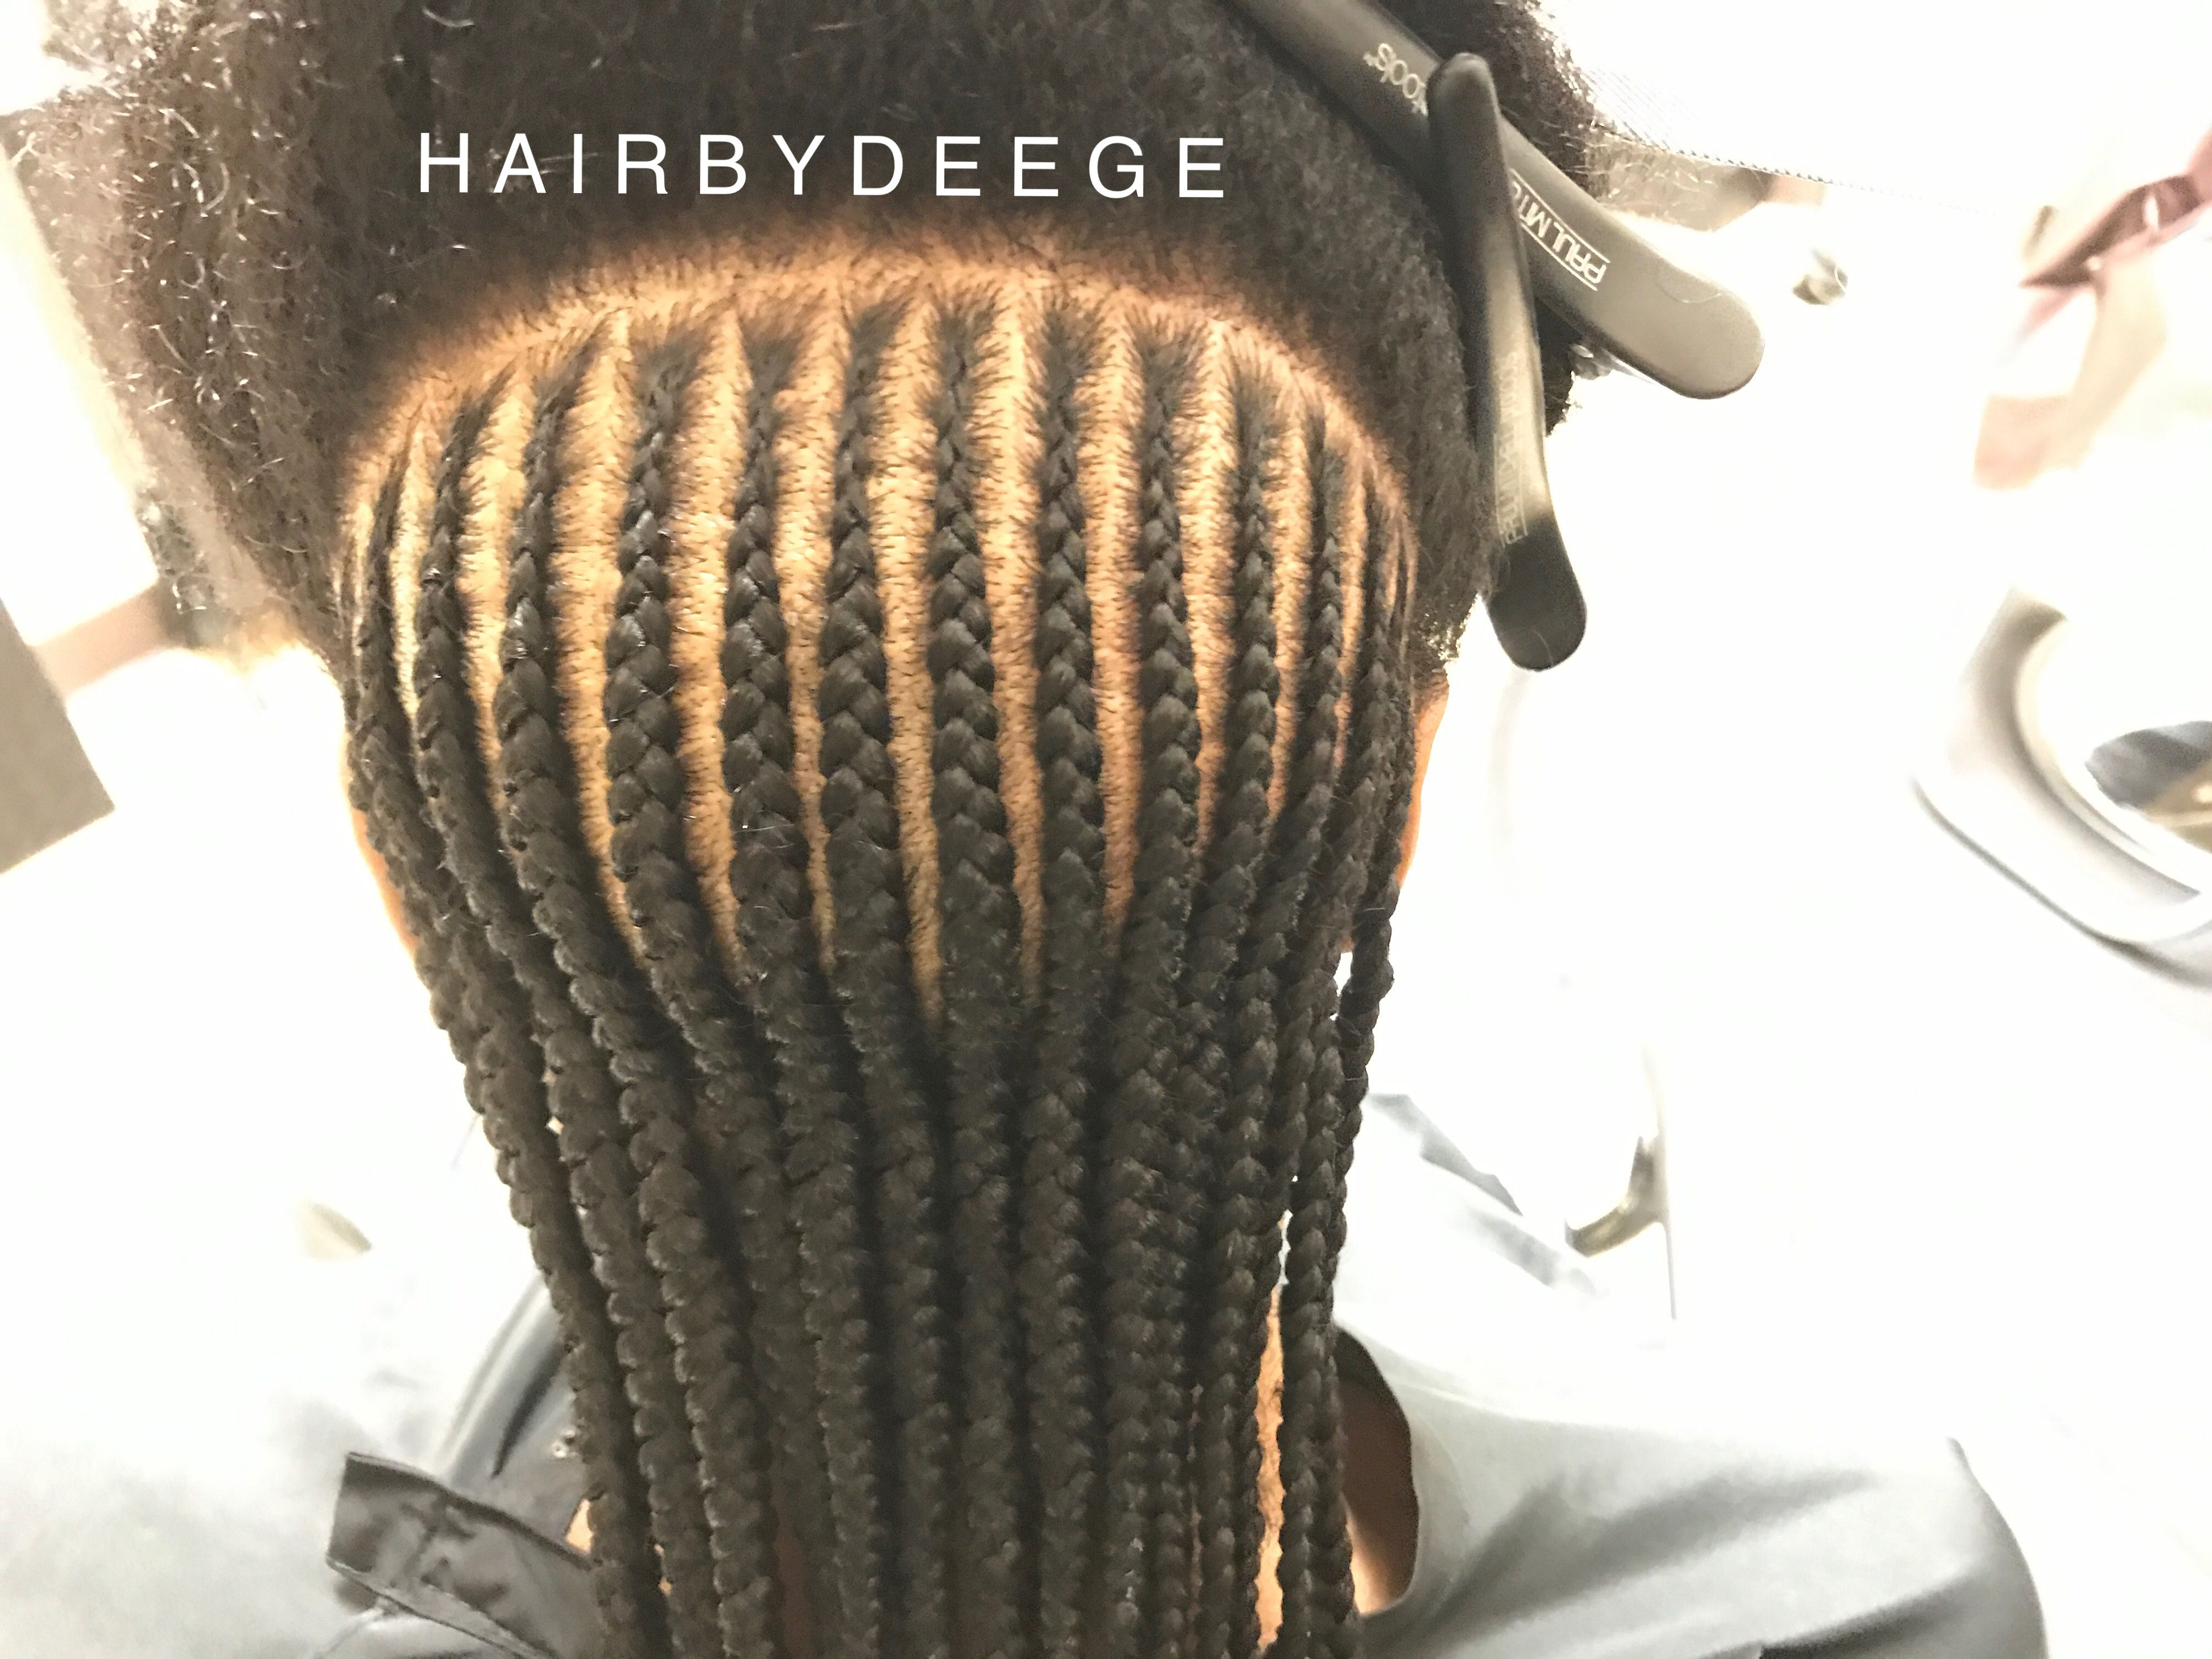 2 Rows Feed In Braids Houston Braider To Book An Appointment Email Iimdeege Aol Com Styleseat Com Hairbydeege Feed In Braid Bob Braids Hair Inspiration